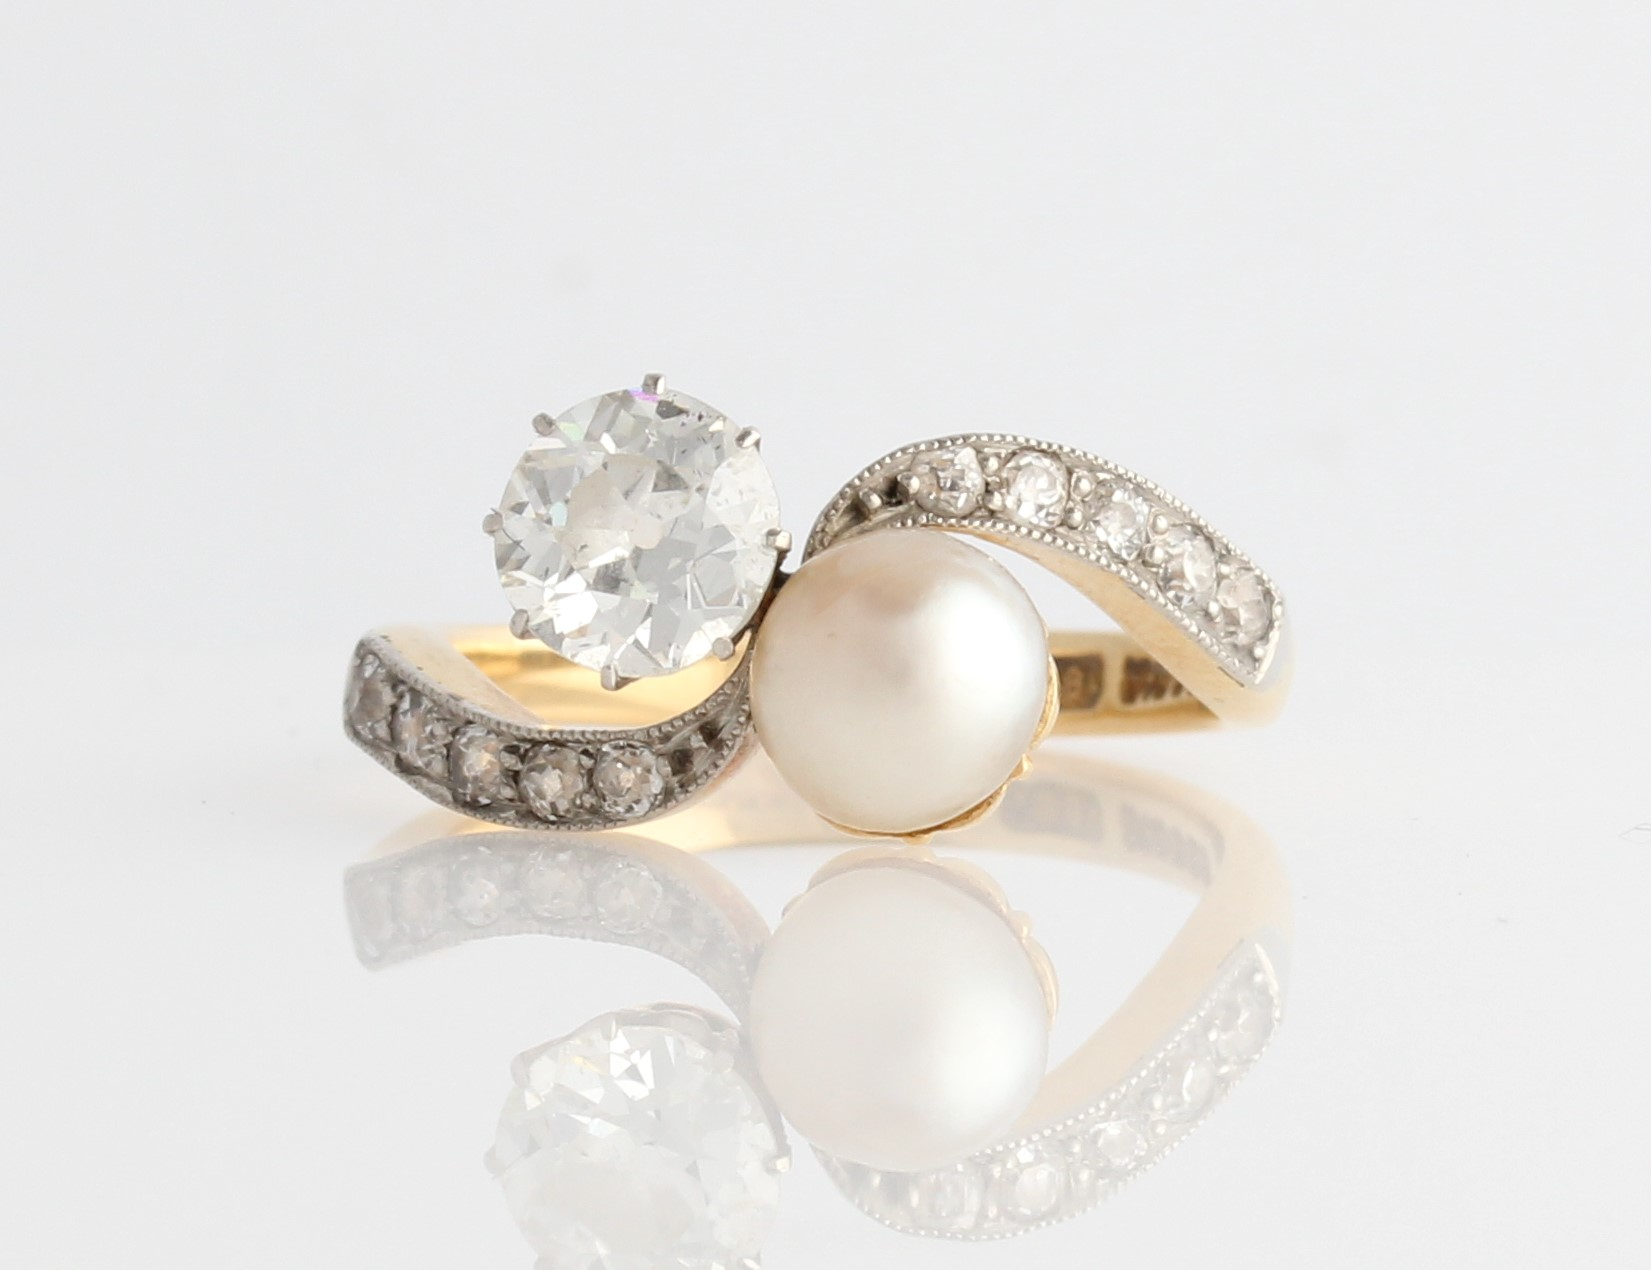 Lot 21 - A diamond and pearl ring, set principally with an Old European cut diamond, measuring approx. 0.